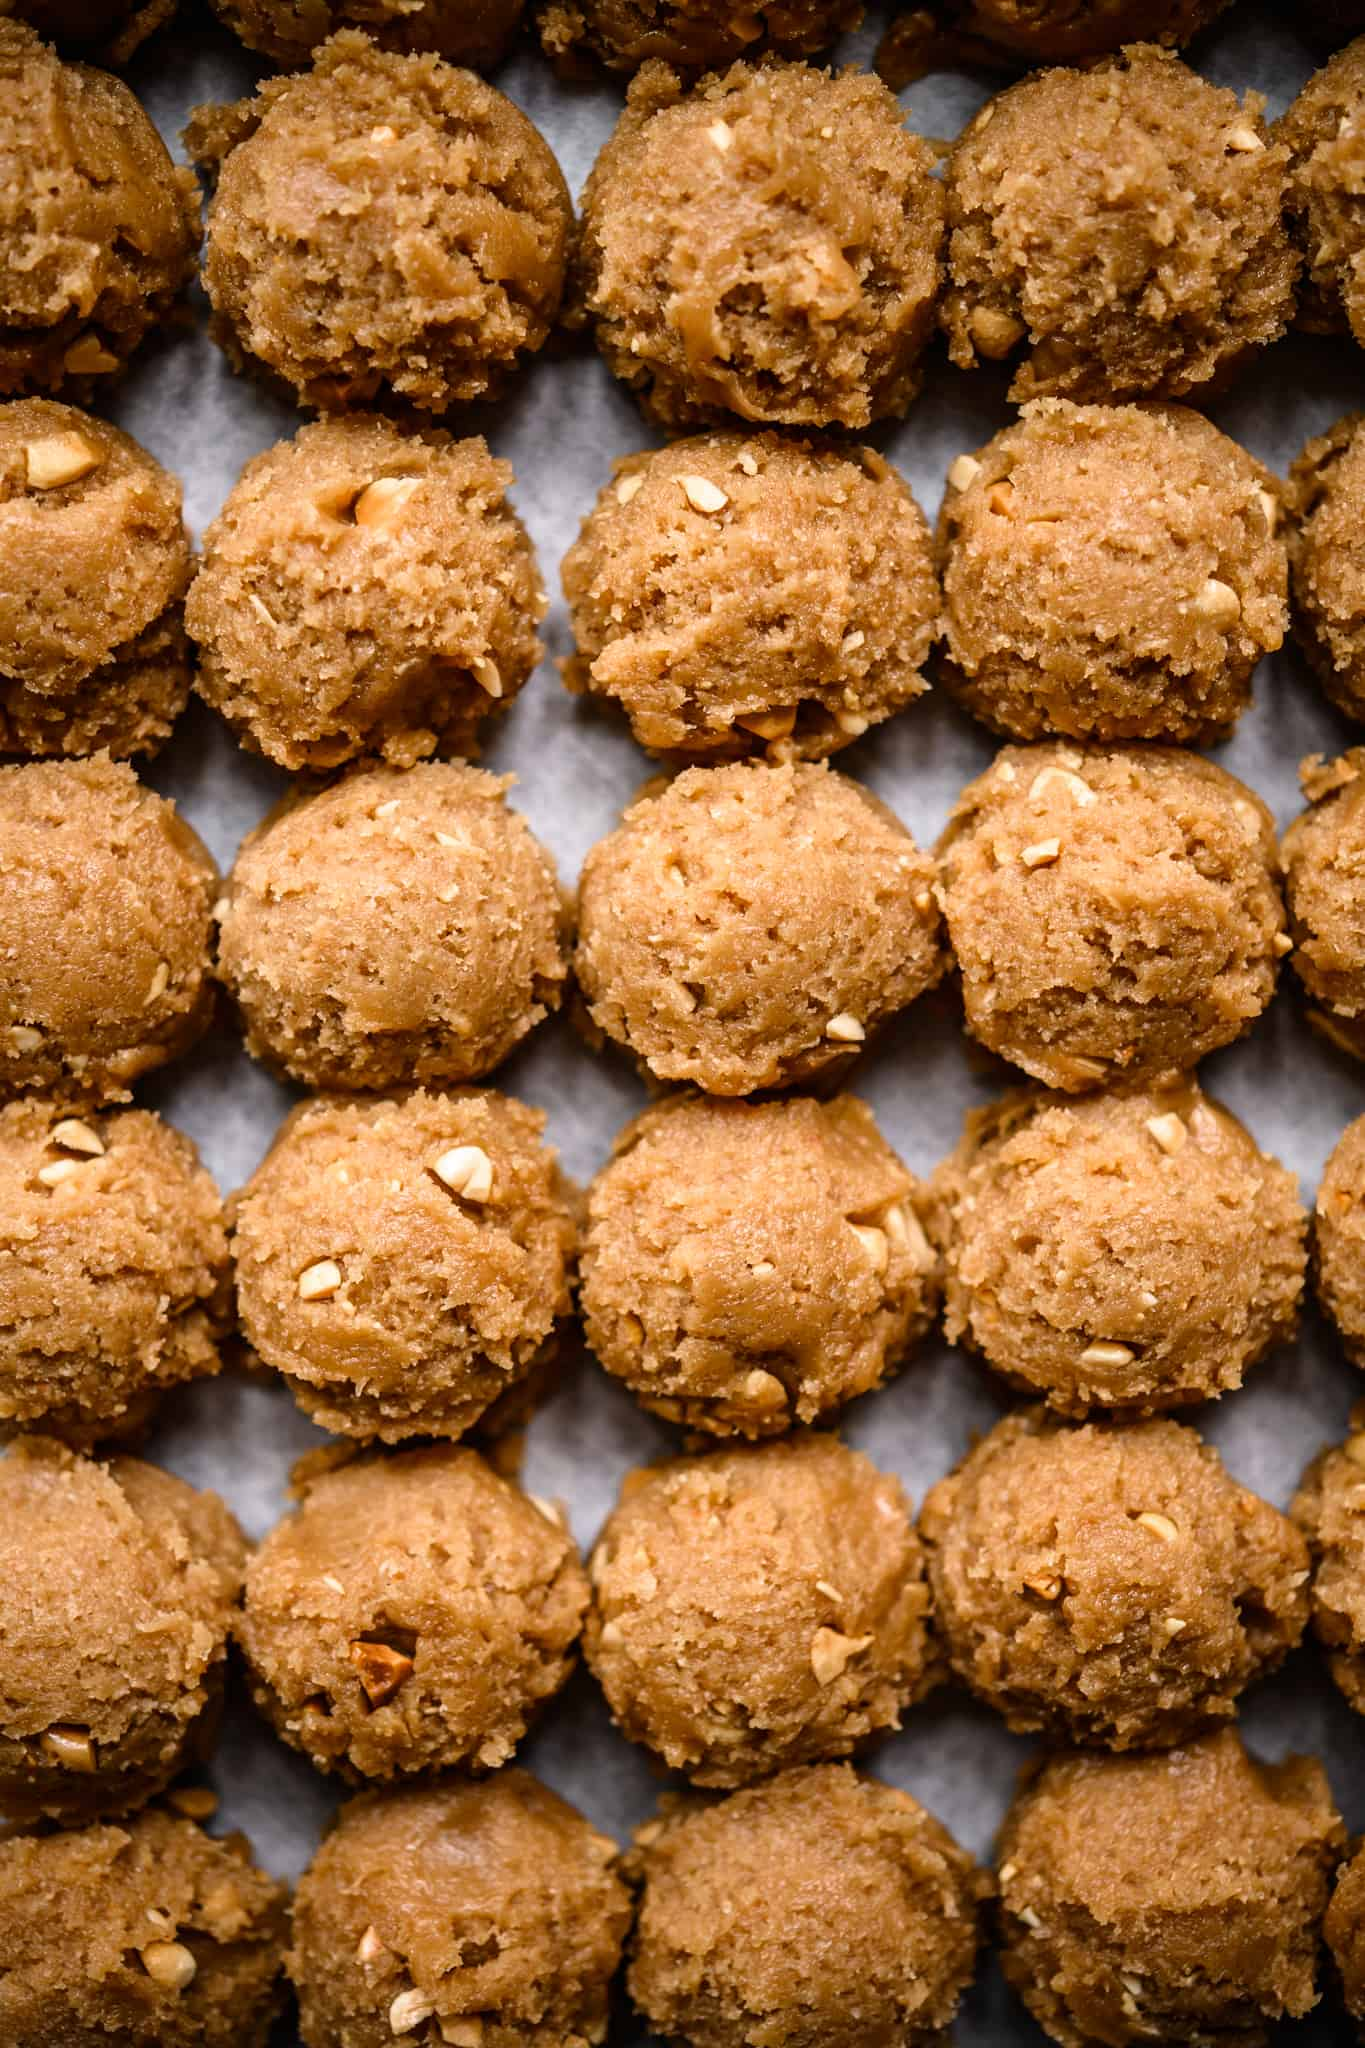 peanut butter cookie dough lined up on sheet pan before baking